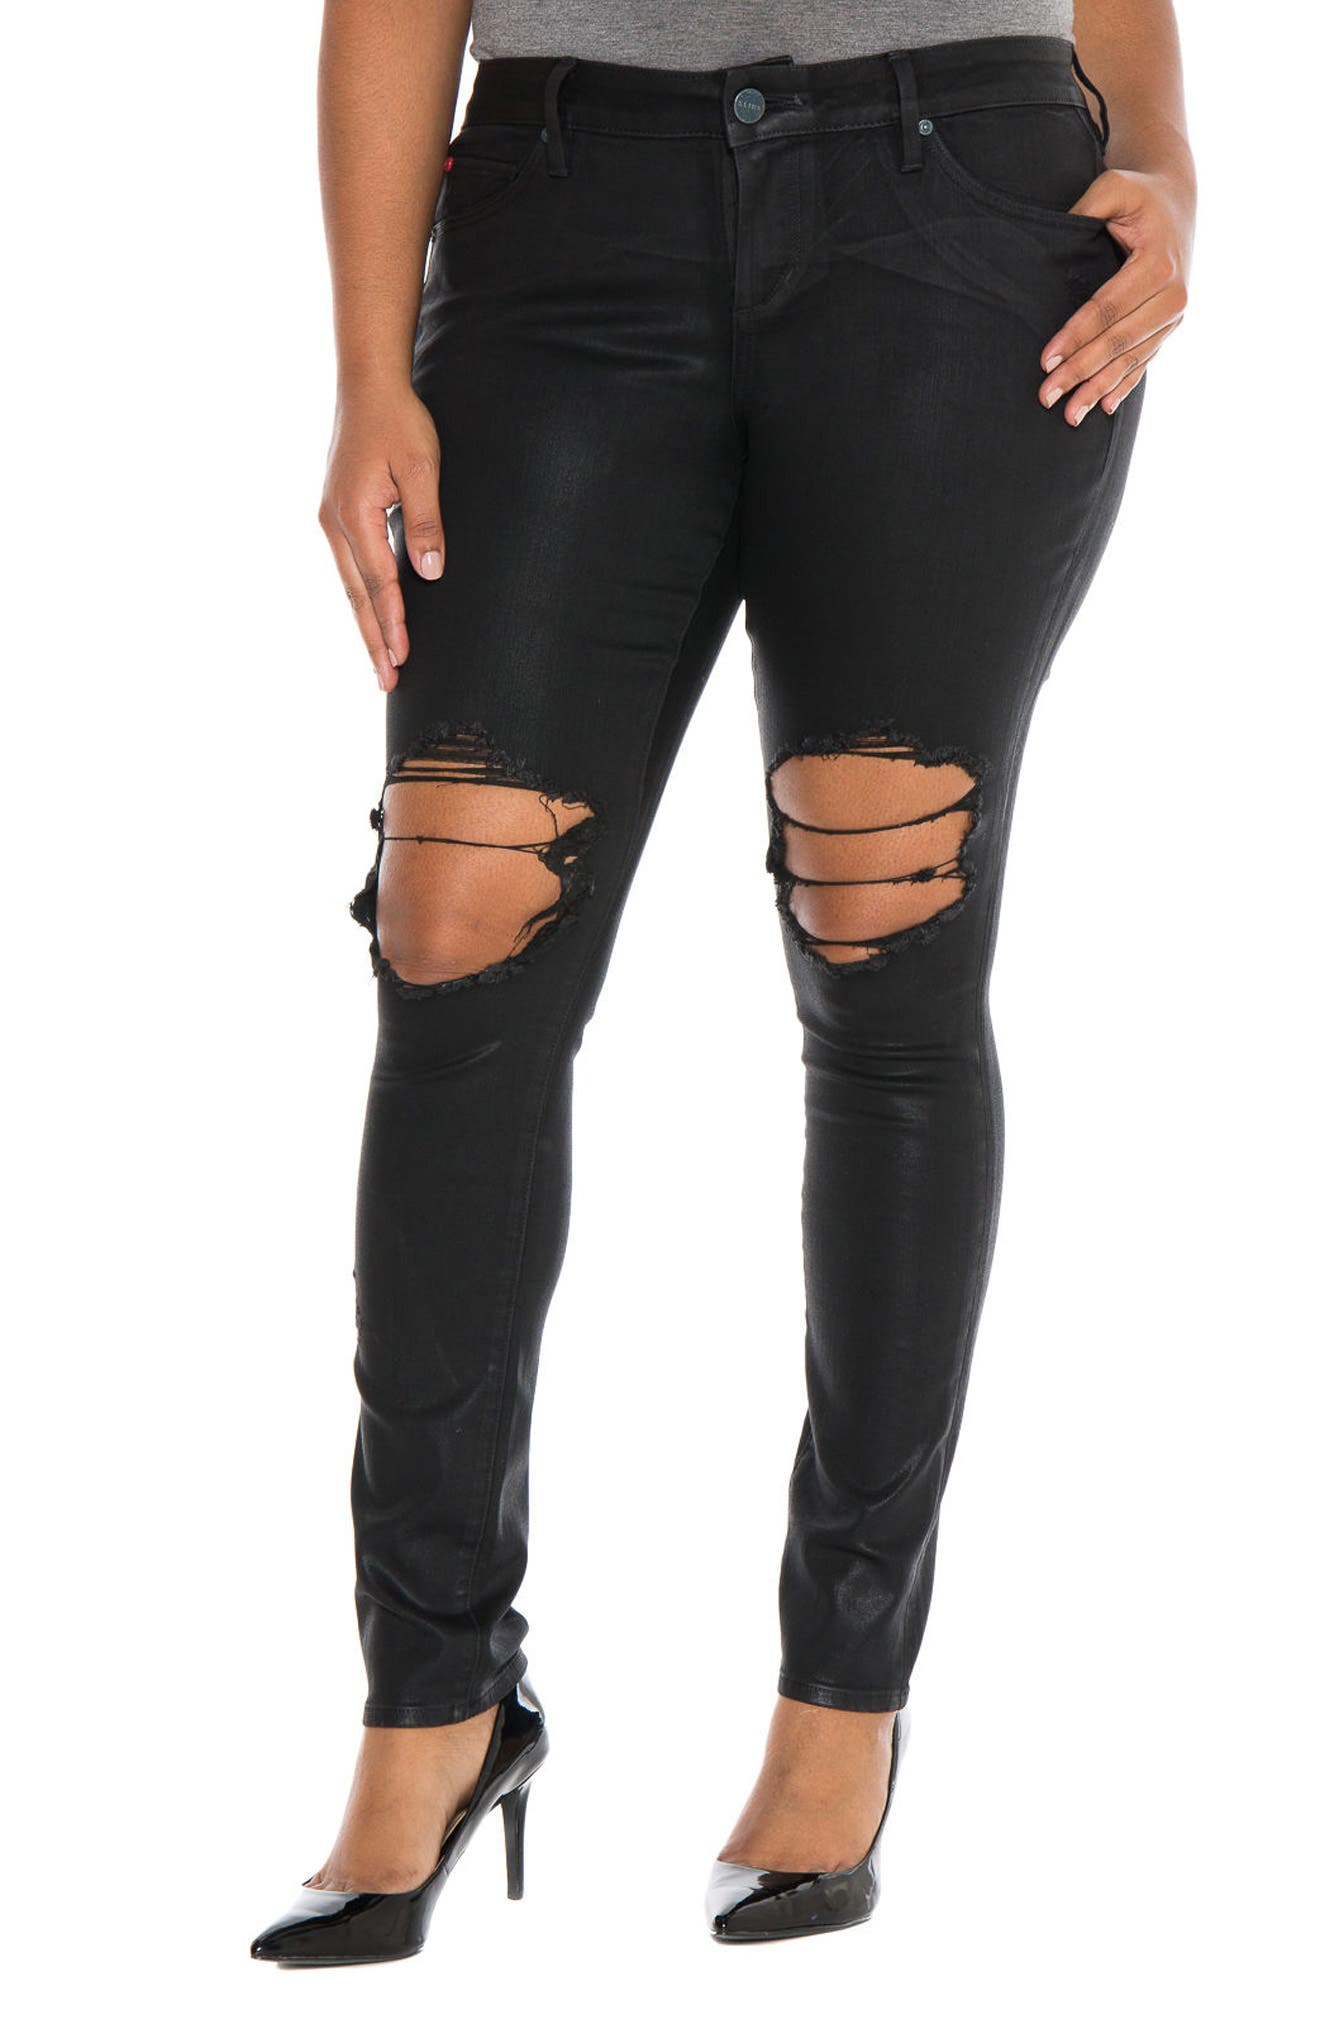 d4c0065f57eec Slink Jeans Destroyed Coated Skinny Jeans Silvia Plus Size